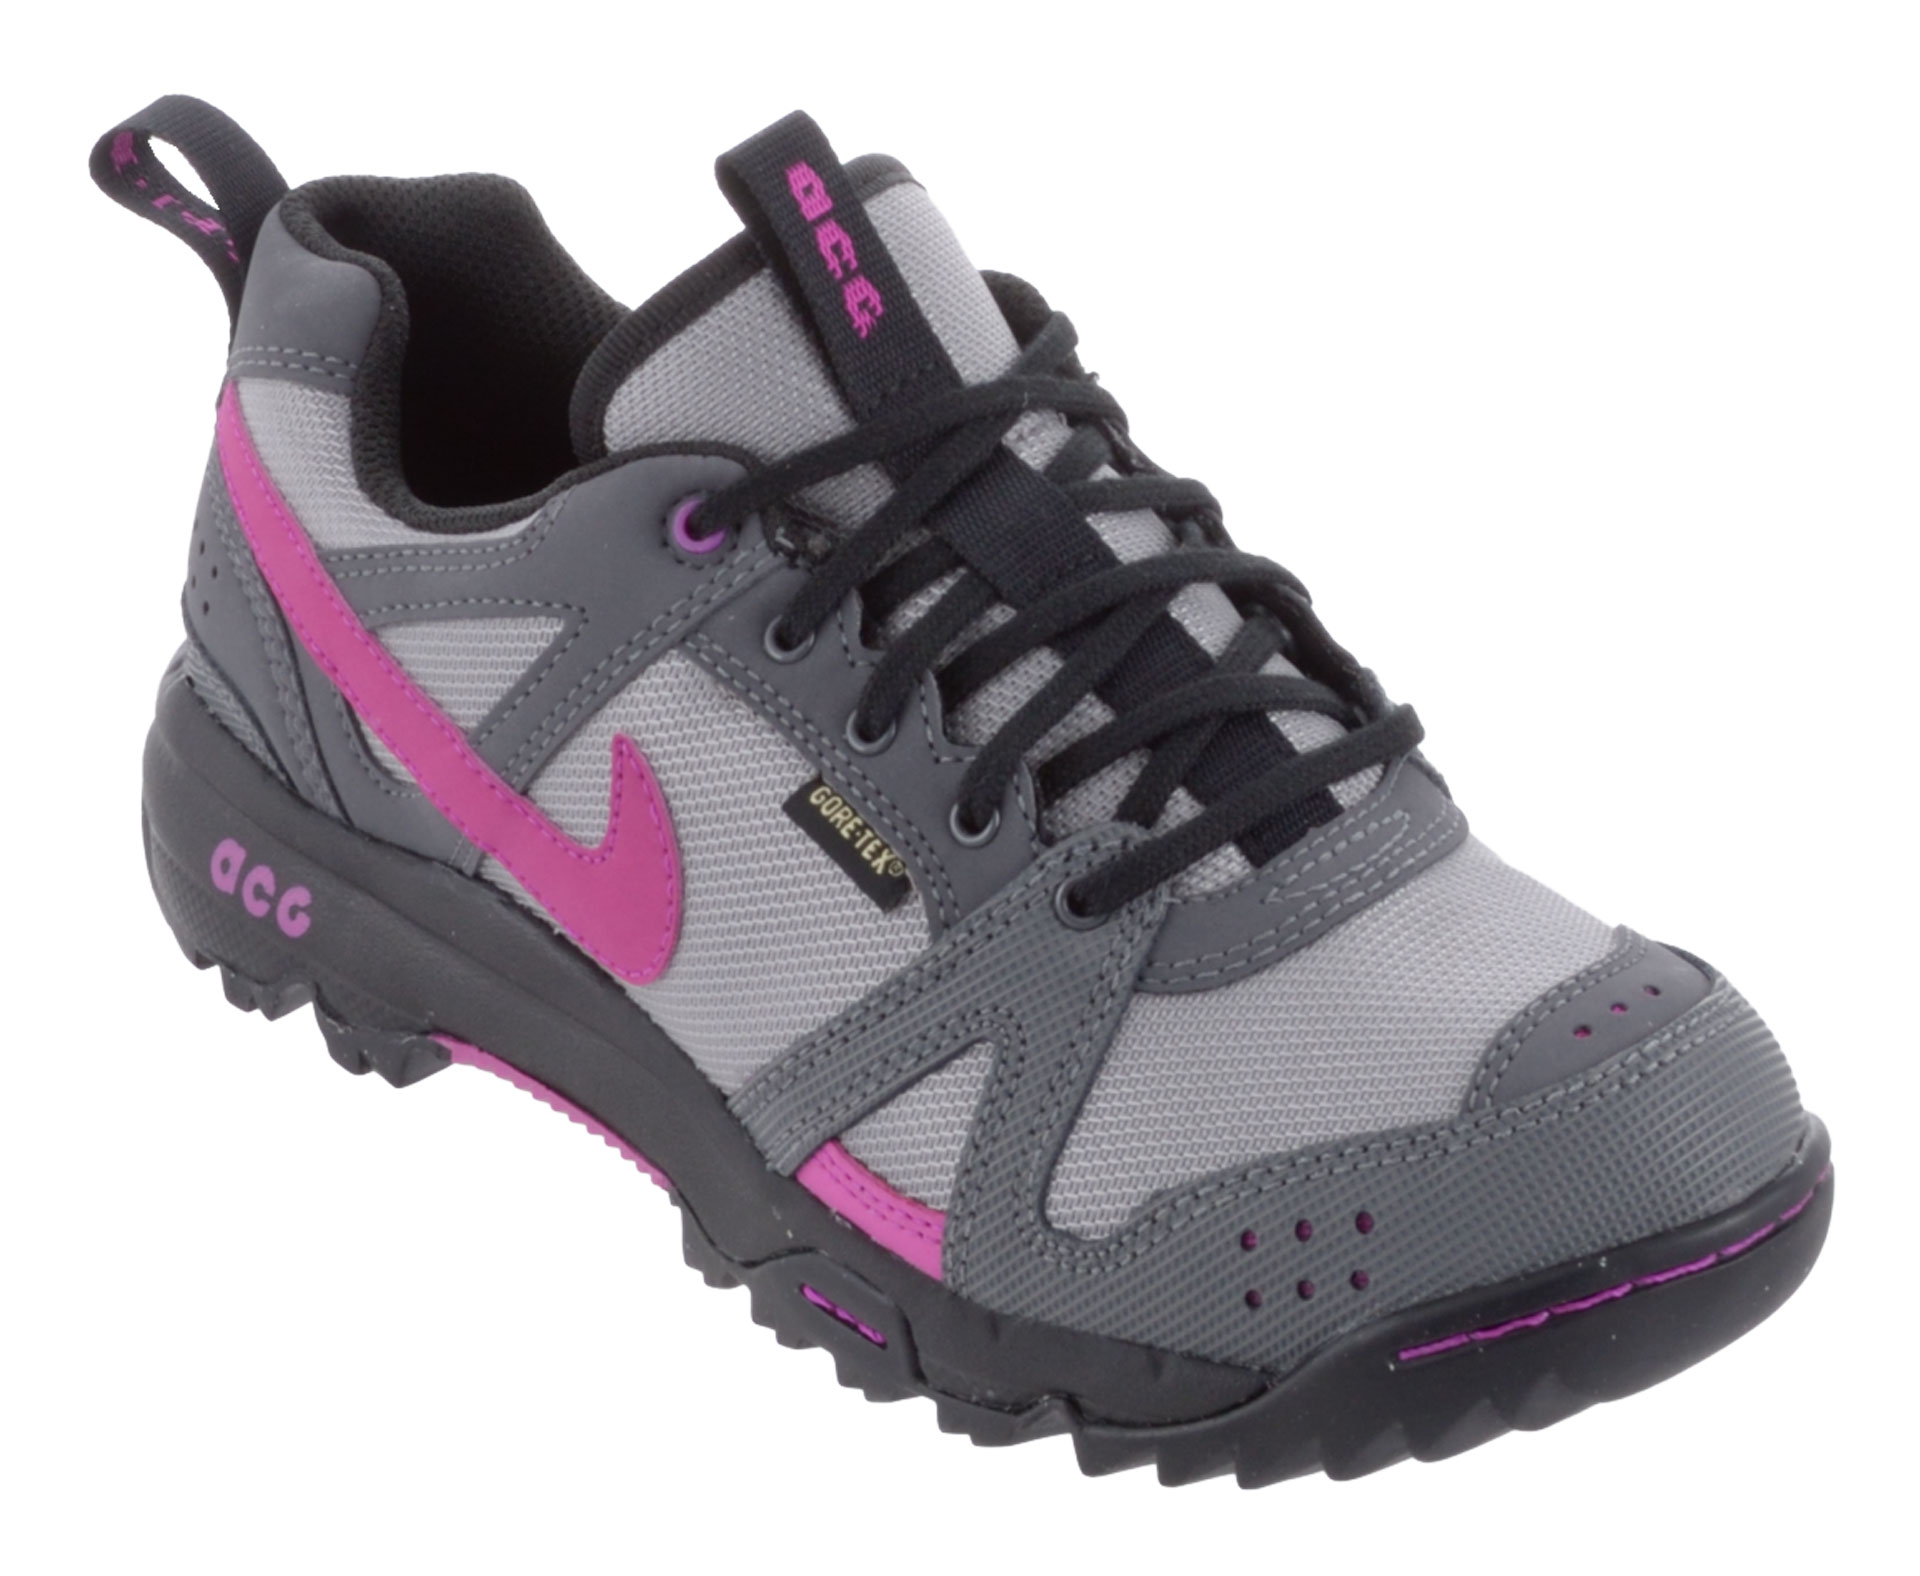 Model Sqykvd4j Sale Nike Hiking Shoes For Women